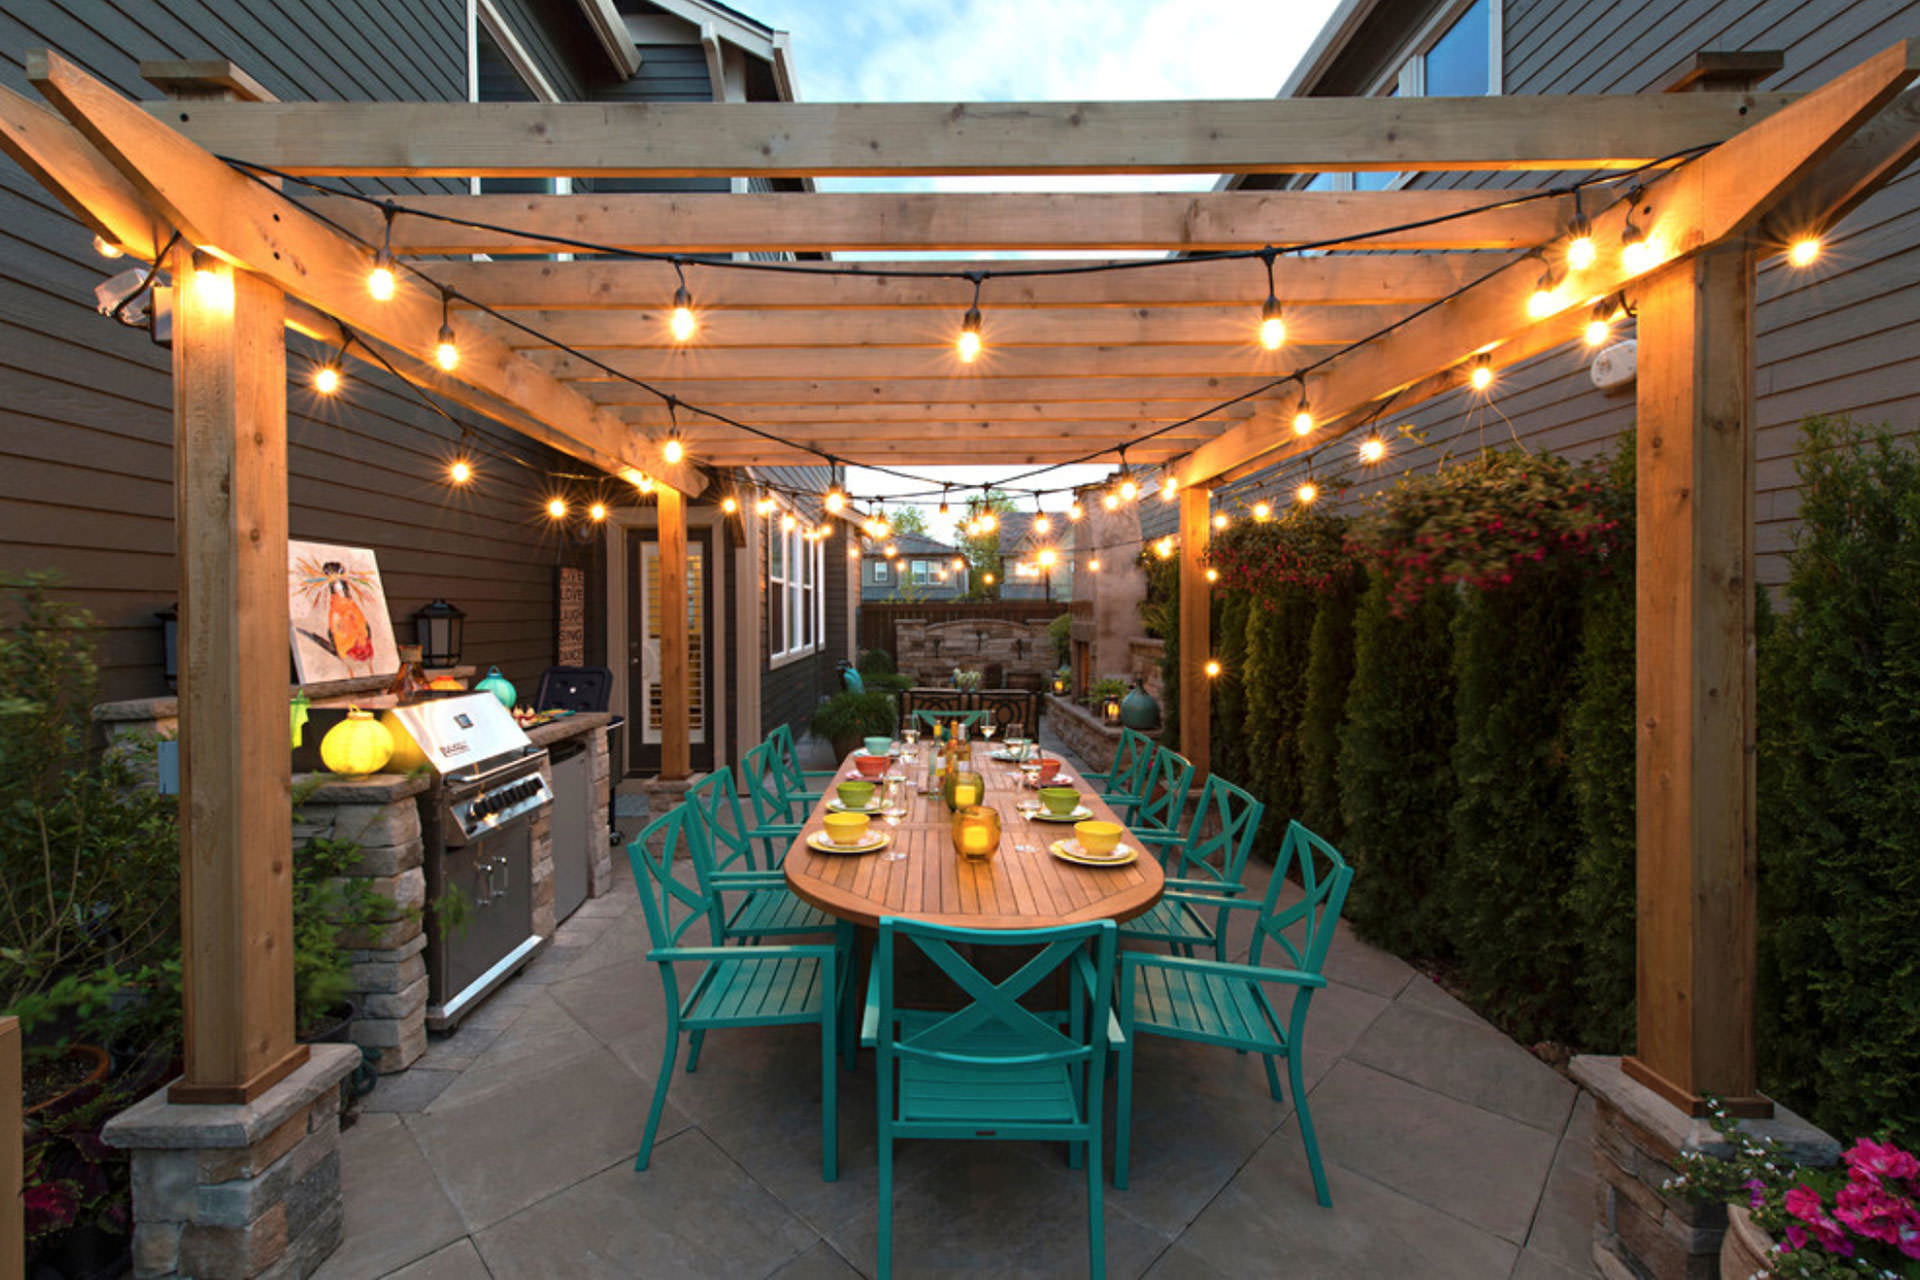 Five Pergola Lighting Ideas to Illuminate Your Outdoor Space on swimming pool post lighting, outdoor patio track lighting, outdoor patio led lighting, outdoor patio umbrella lighting, outdoor patio wall lighting, outdoor walkway post lighting, garden post lighting, outdoor patio lighting fixtures, outdoor fence post lighting, outdoor stone post lighting, outdoor patio recessed lighting,